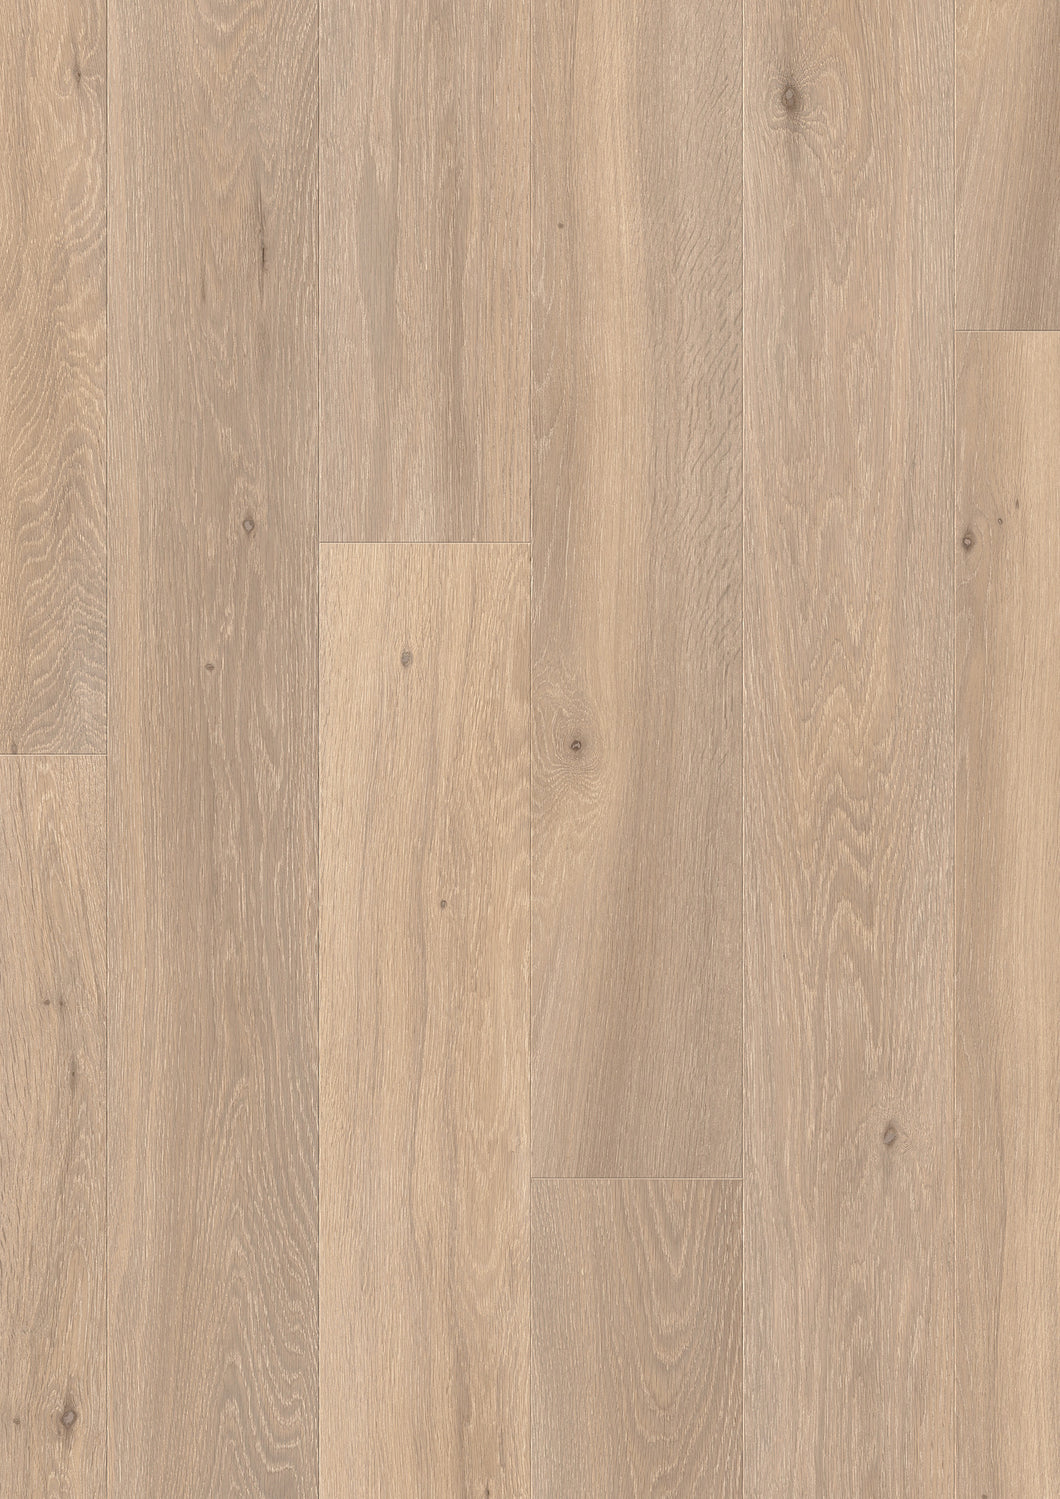 Quickstep Long Island Oak Natural - Largo LPU 1661